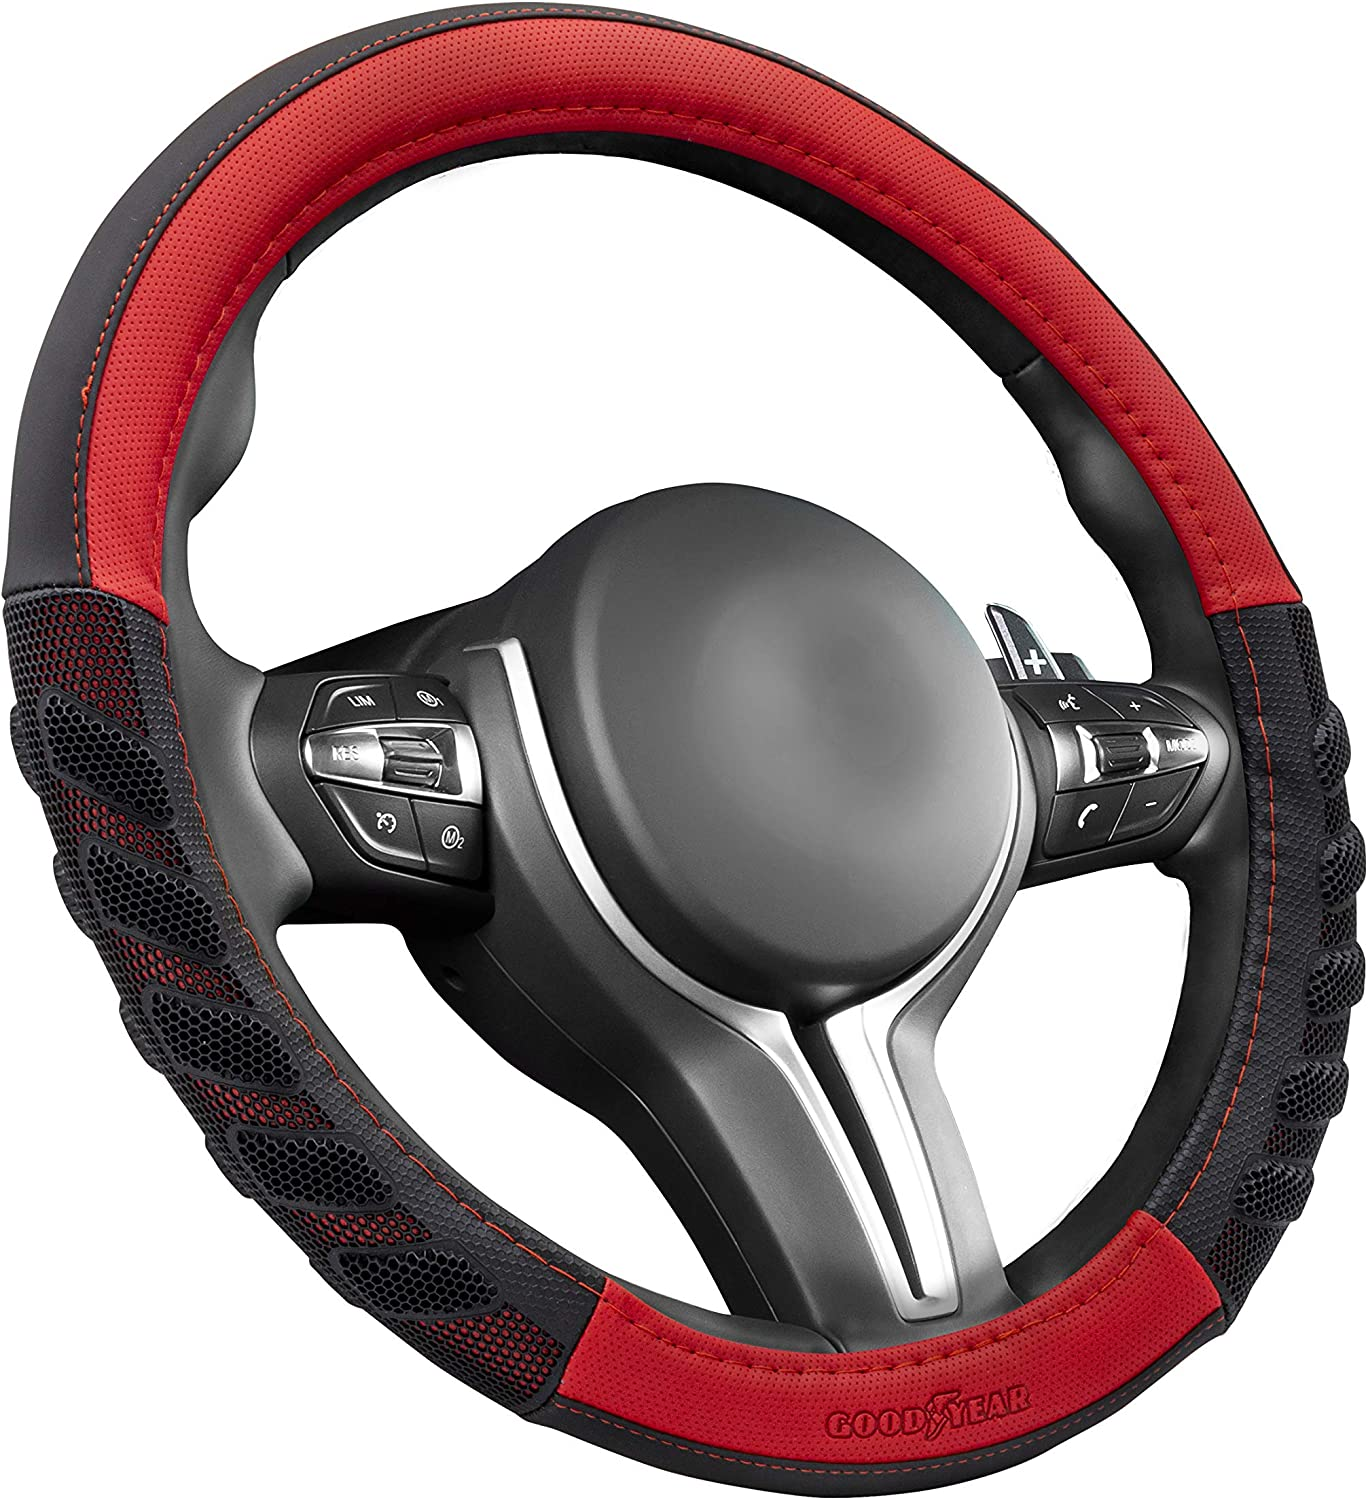 70% OFF Outlet Direct sale of manufacturer GOODYEAR GY1644 High Race Performance No Wheel Cover Steering